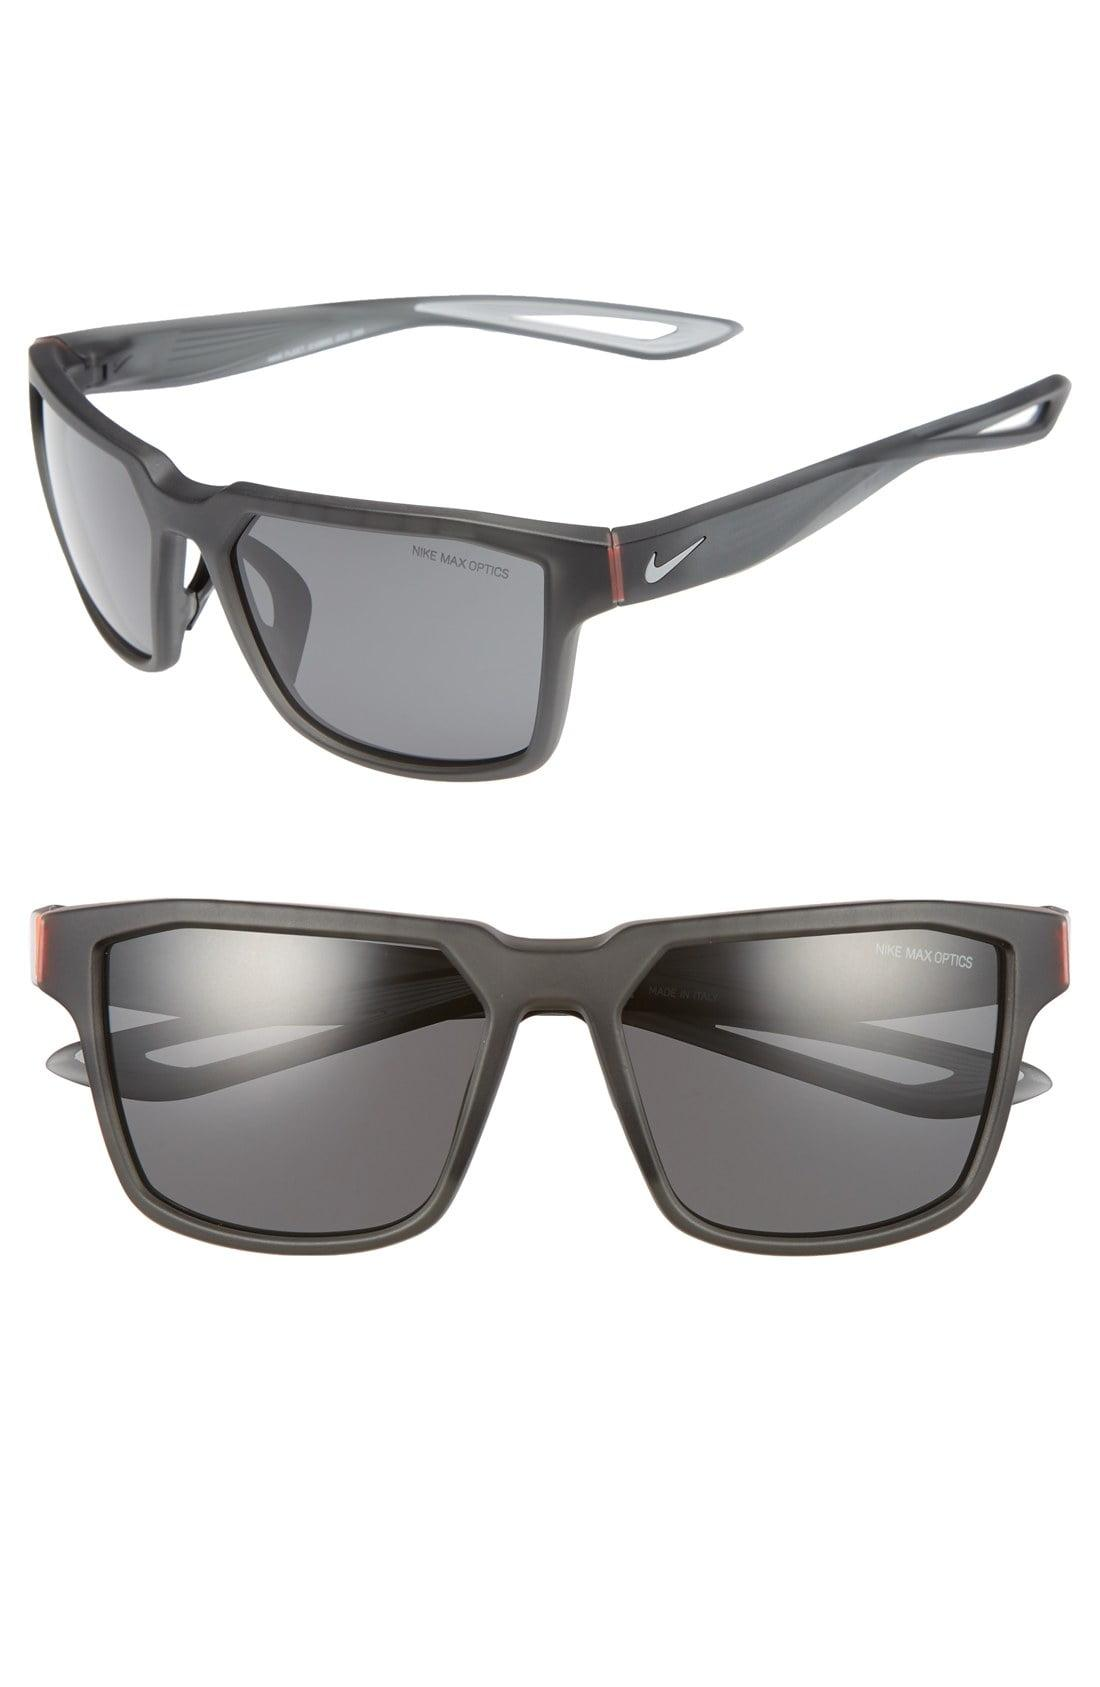 7869369a68428 Lyst - Nike Fleet 55mm Sport Sunglasses - in Gray for Men